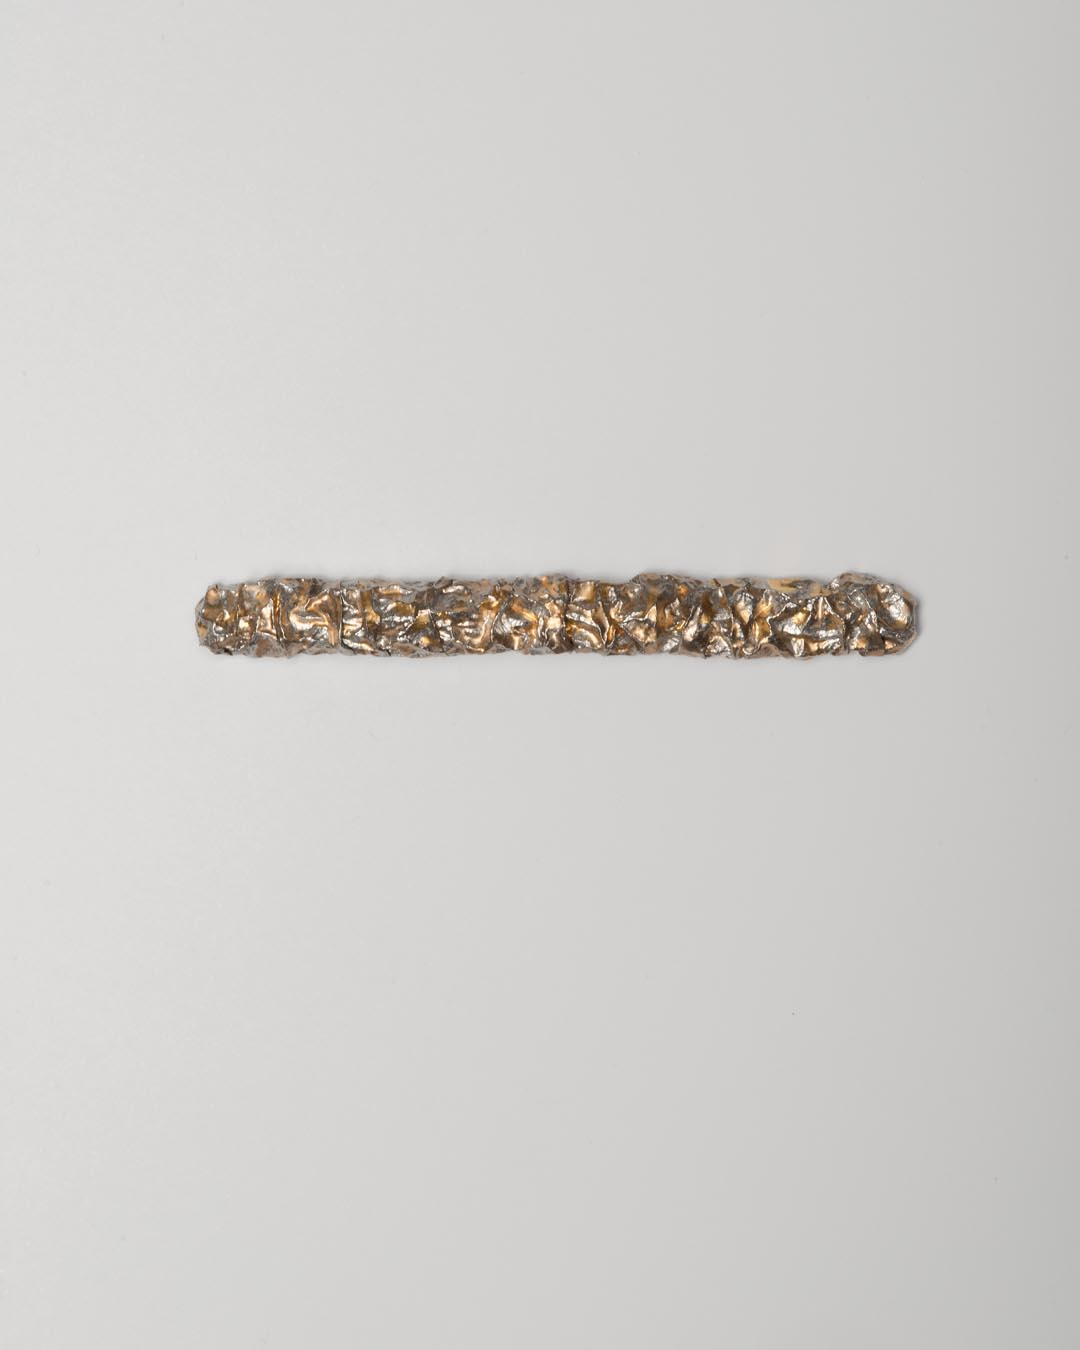 Yasuki Hiramatsu, untitled, brooch; platinum, 24ct gold, €3250